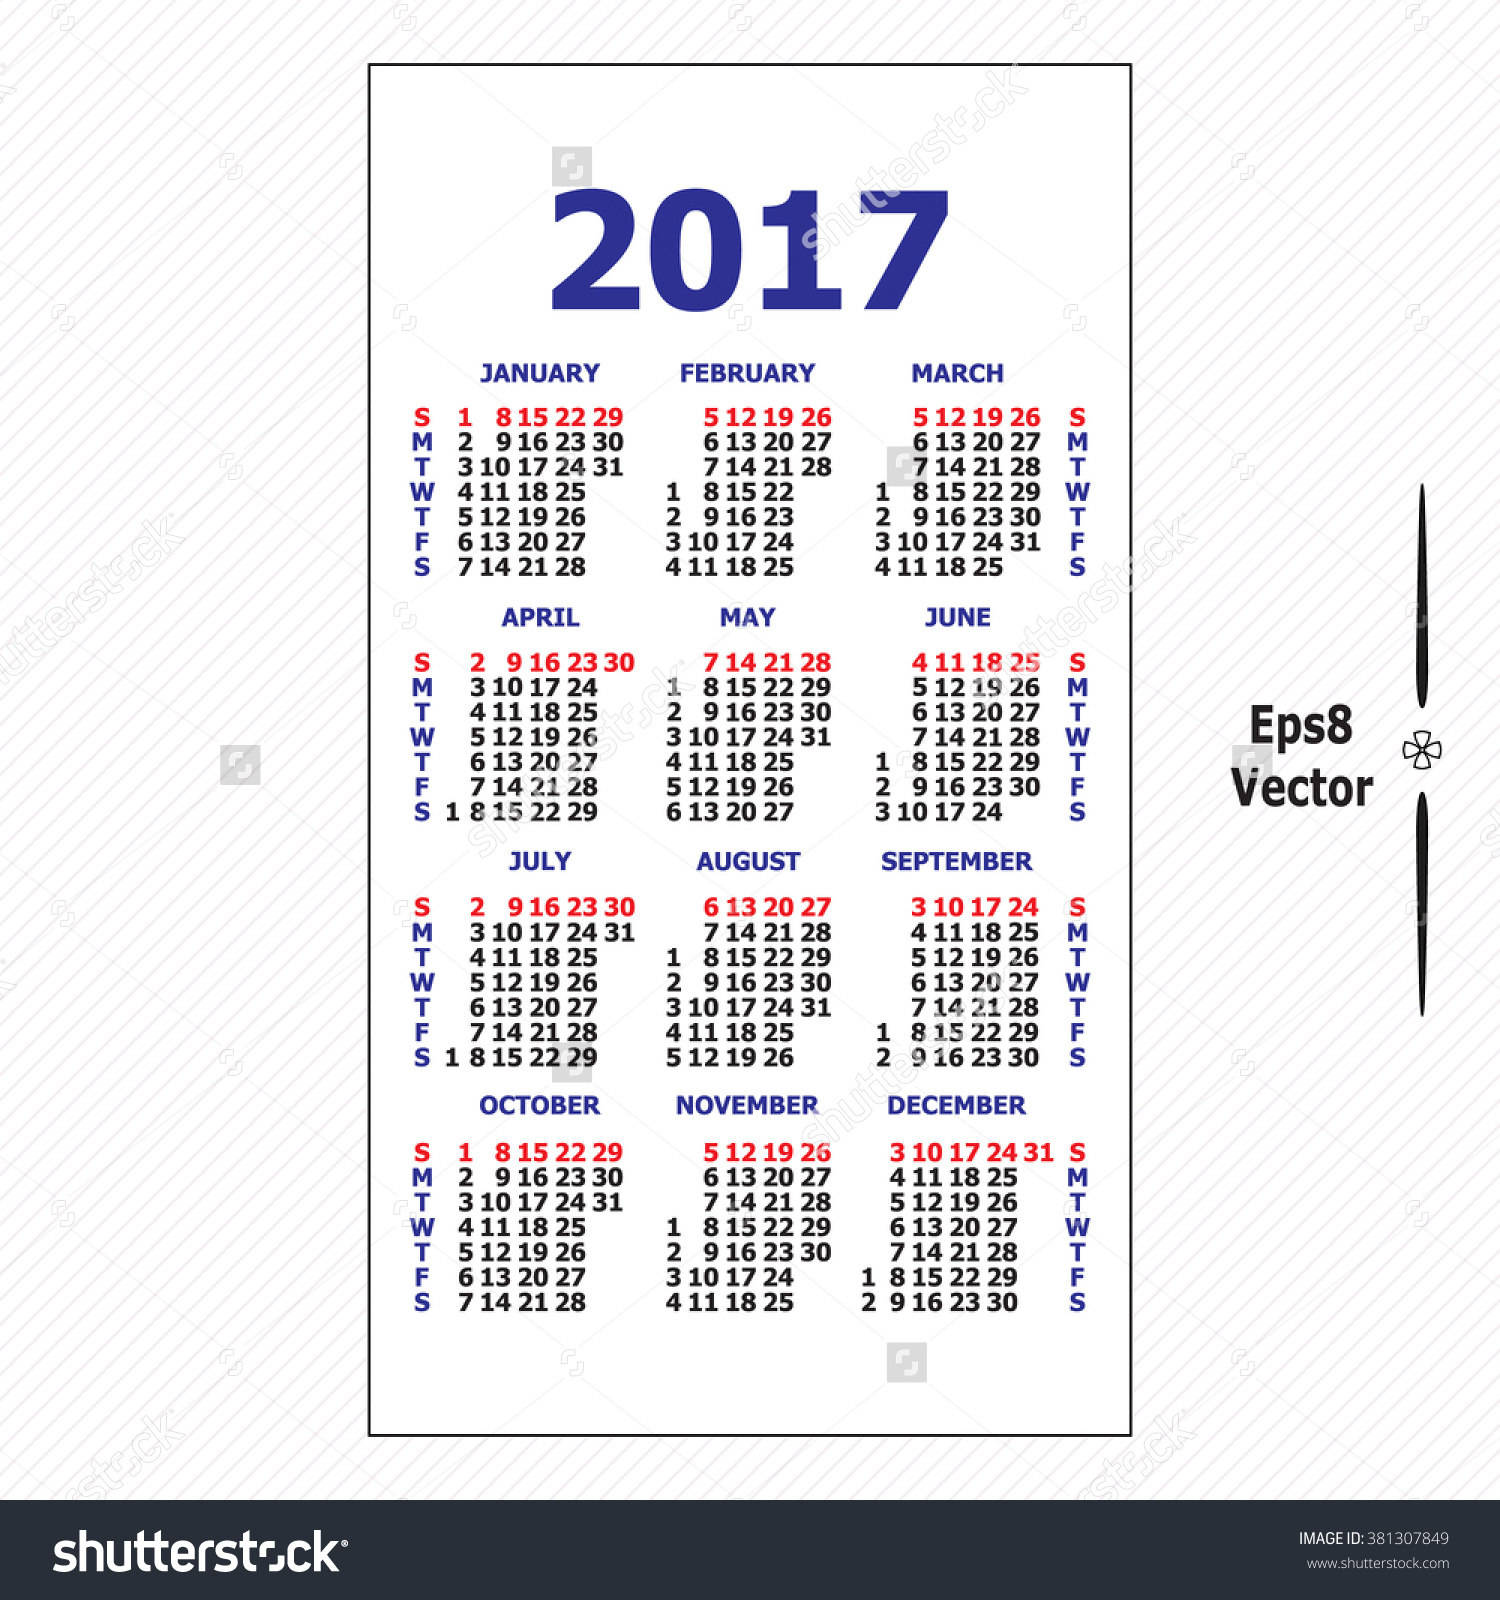 2017 Pocket Calendar Template Calendar Grid Stock Vector 381307849